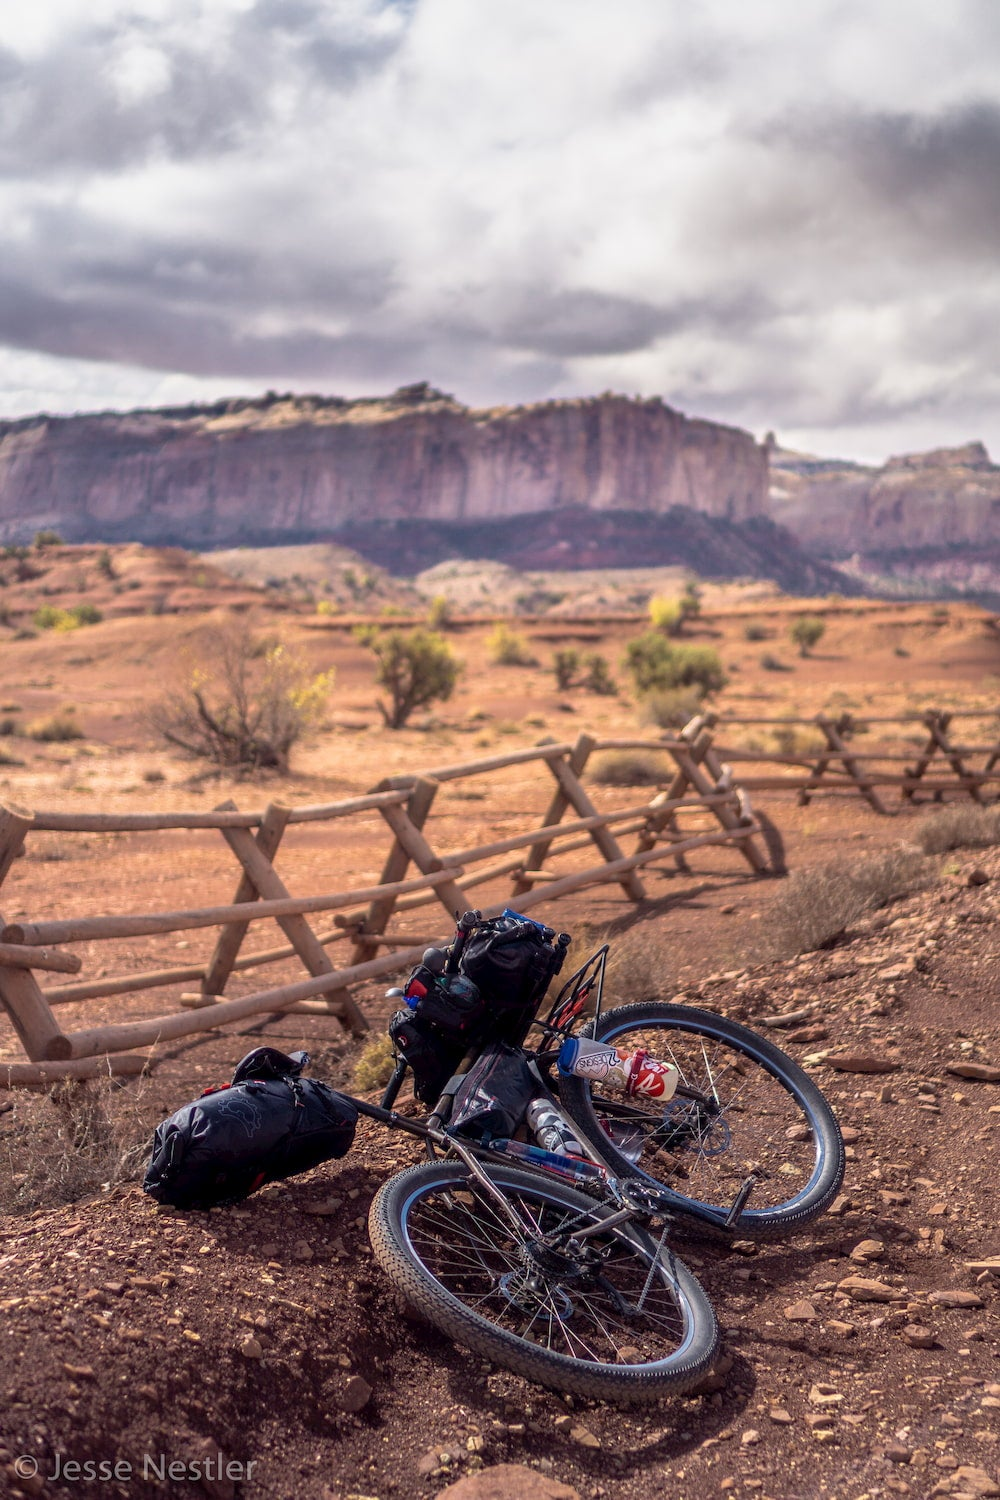 Bike laying on ground with fence and rock wall in background